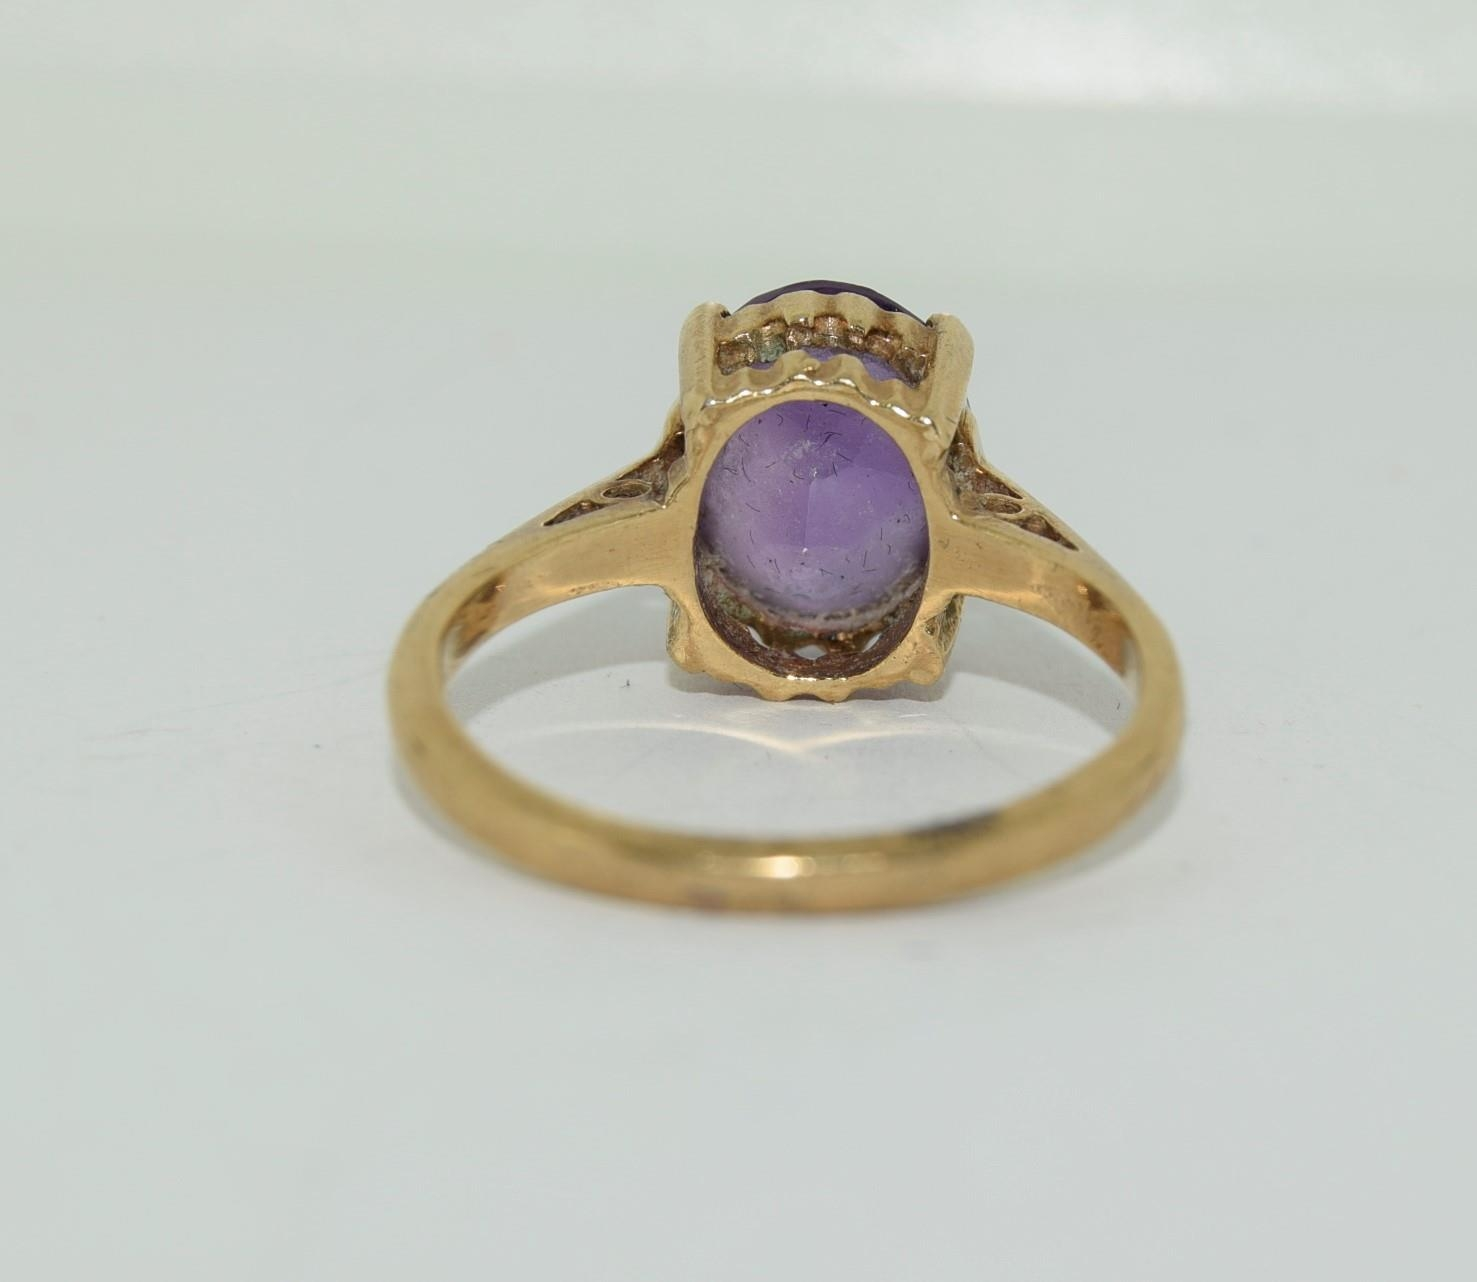 9ct gold ladies Amethyst ring size N - Image 5 of 12